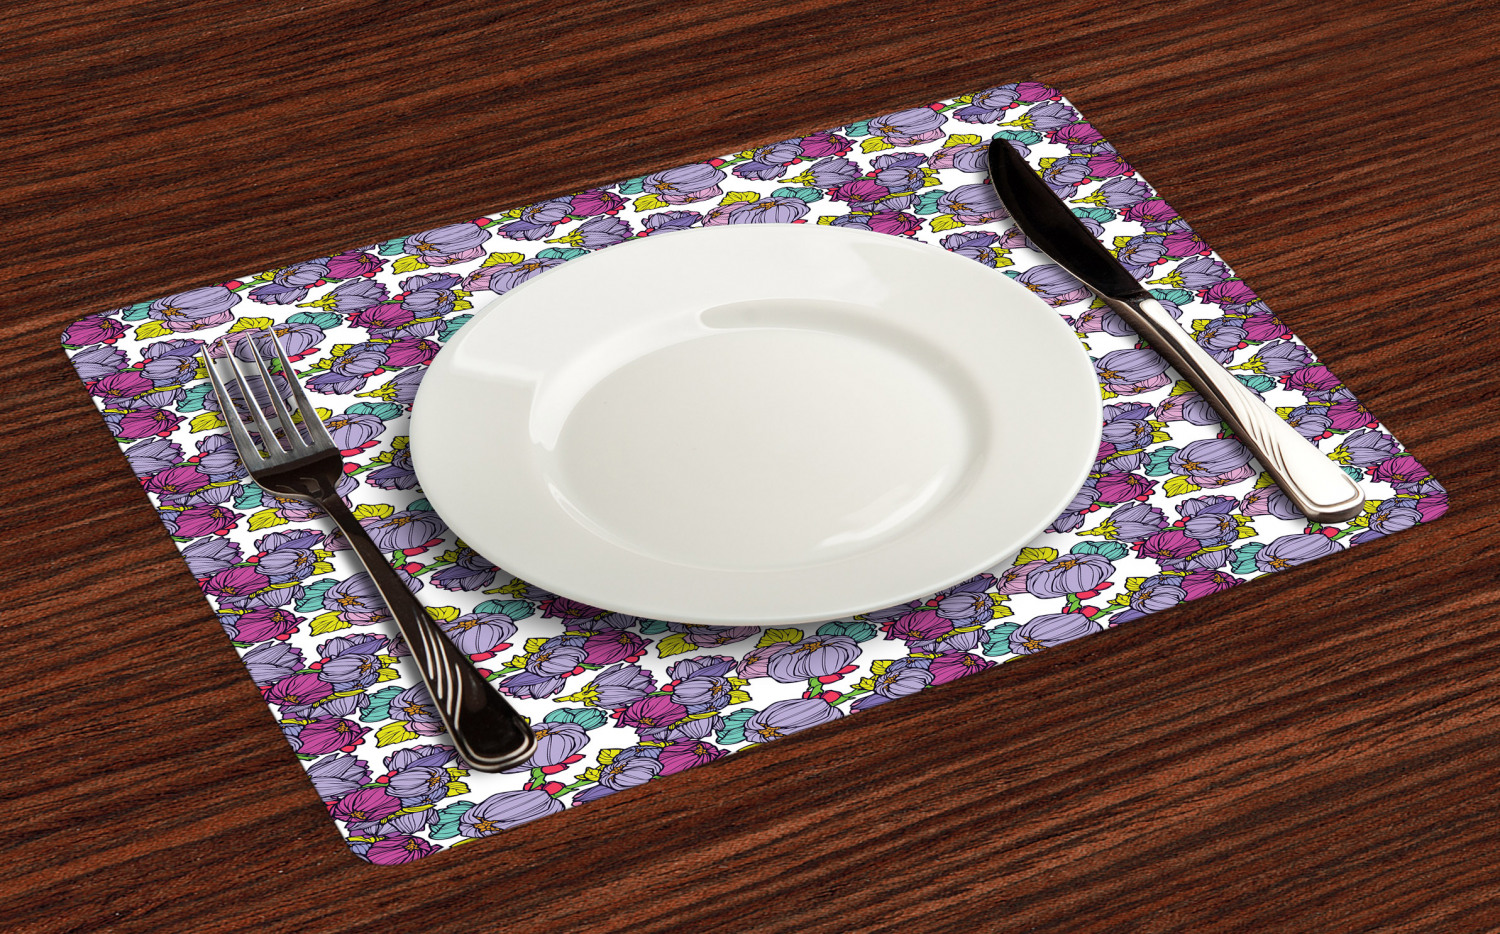 Ambesonne-Flower-Pattern-Placemat-Set-of-4-Fabric-Place-Mats-for-Table-Decor thumbnail 229